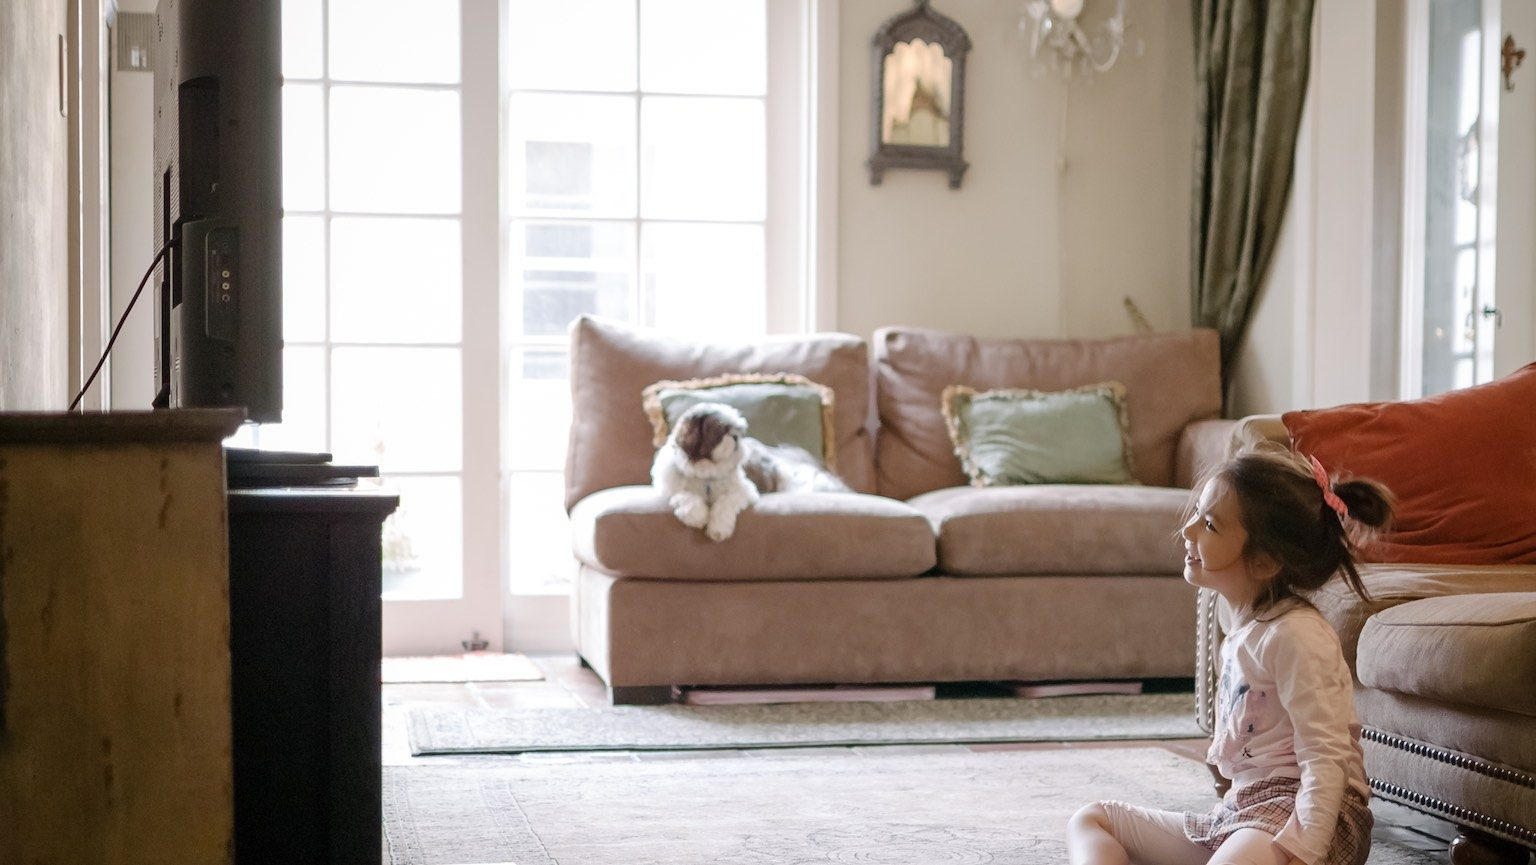 A little girl is watching TV. She's playing a movie and appears happy and entertained by what's playing on the LCD TV. She's 6 years old and Eurasian. Her dog is sitting on the couch in the background. The home's interior appears stylish and includes old-world/vintage home decor.